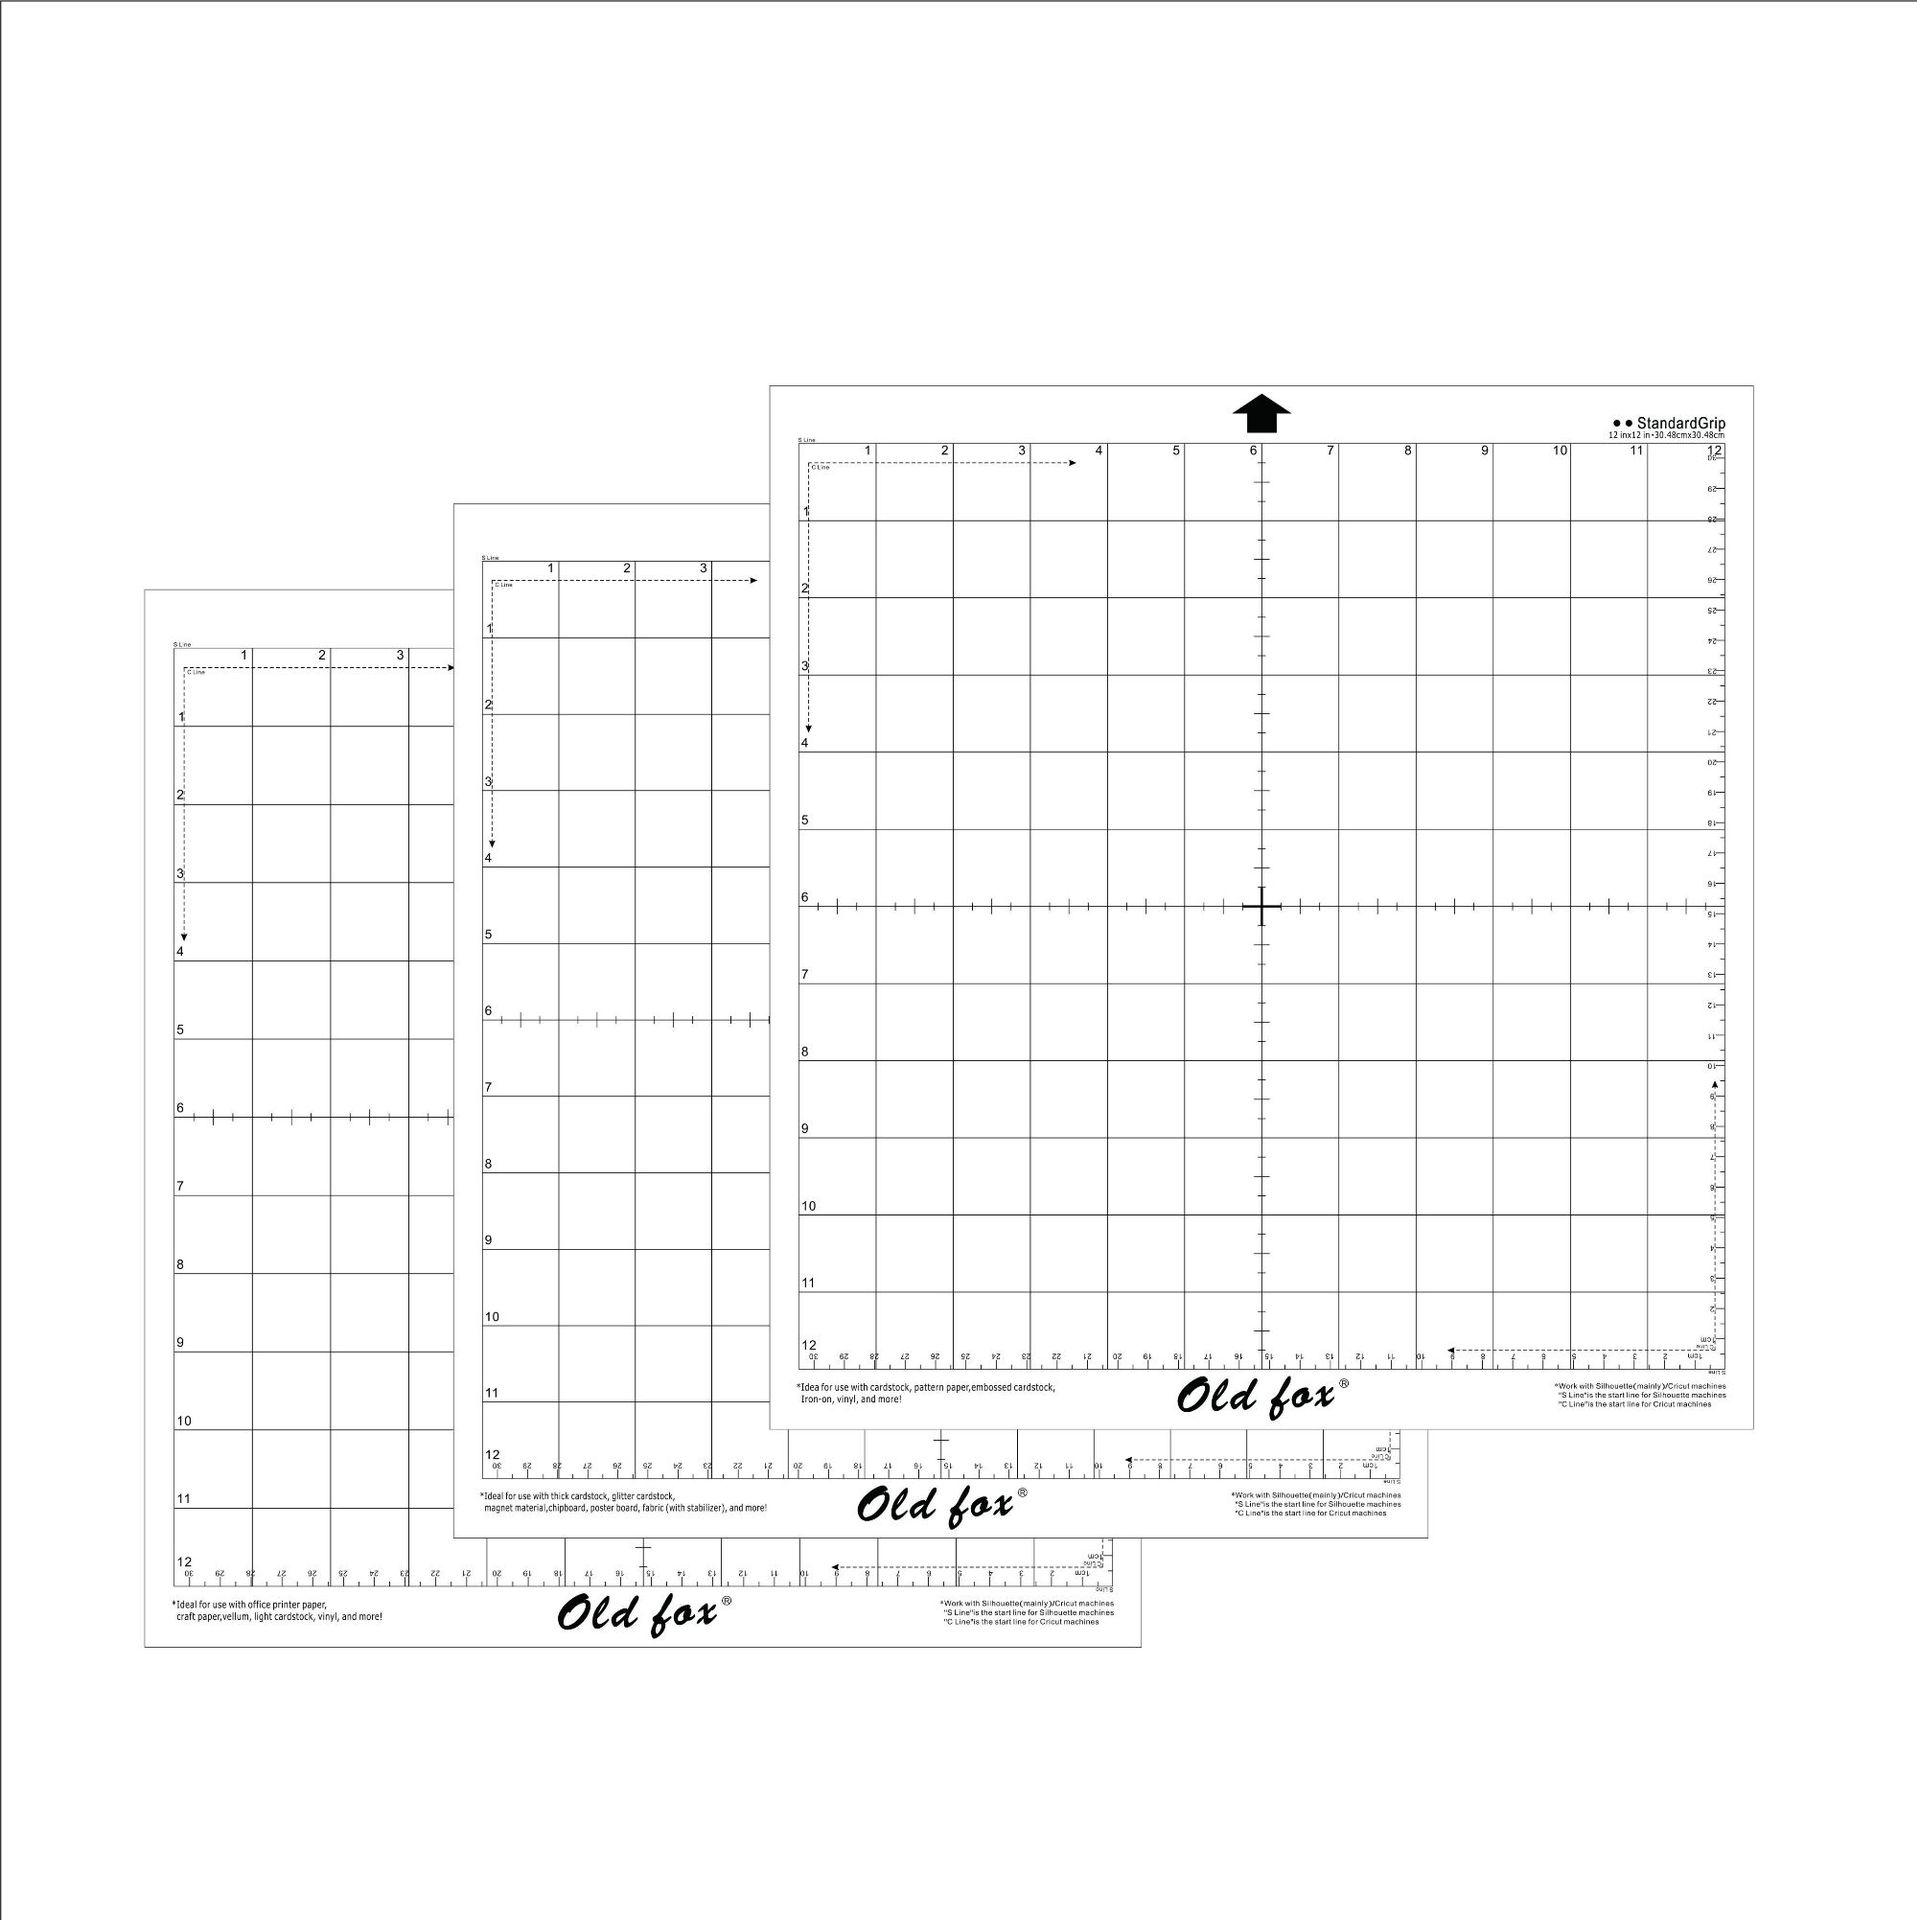 3pcs/5pcs Replacement Cutting Mat Transparent Adhesive Mat With Measuring Grid 12*12-inch For Silhouette Cameo Plotter Machine